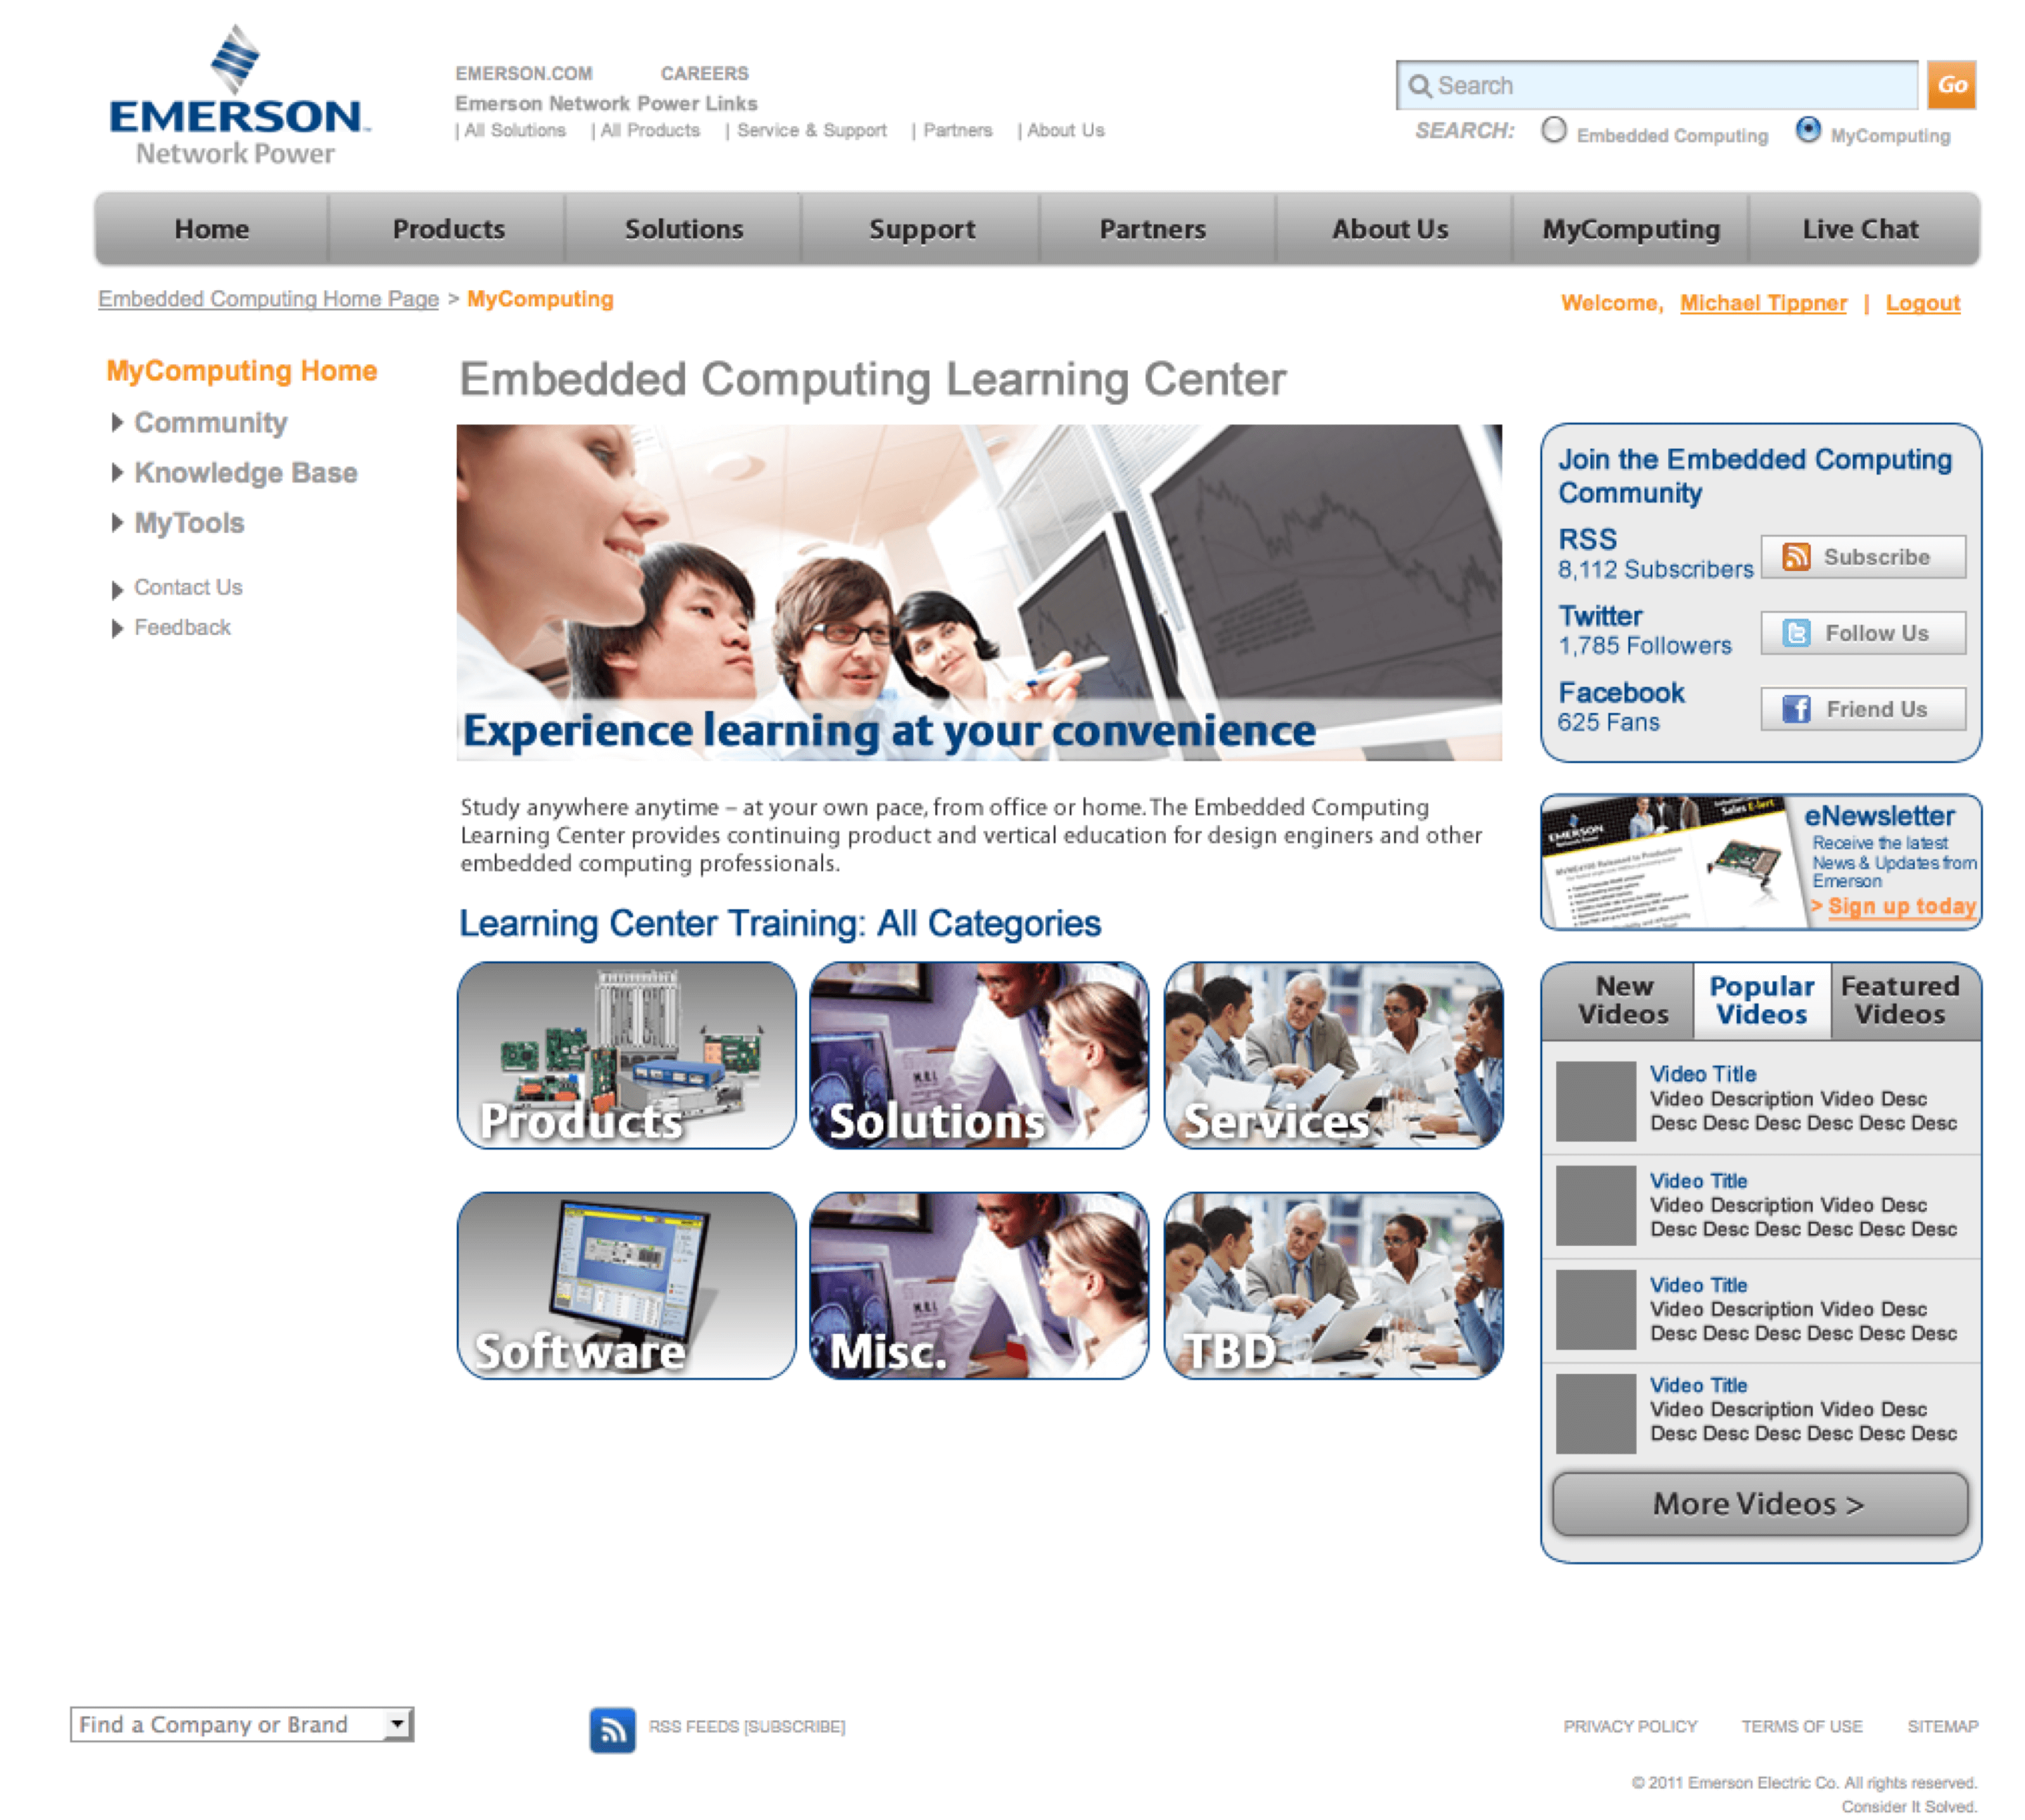 Emerson-Embedded-Computing-Extranet-Portal-Training-Page